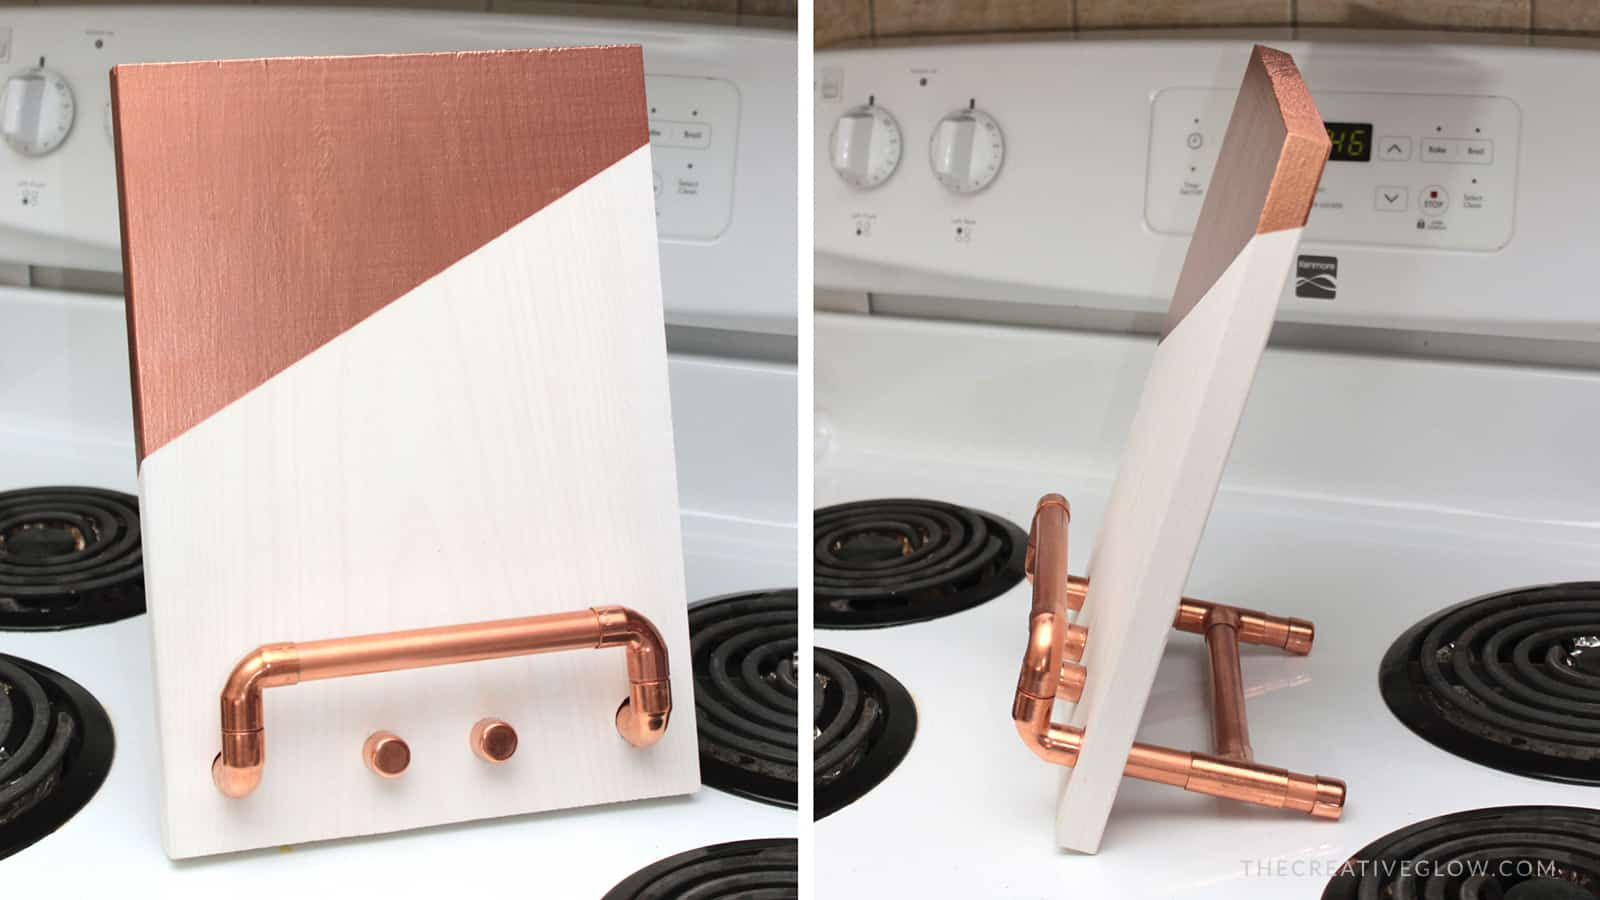 Wood and copper piping tablet stand